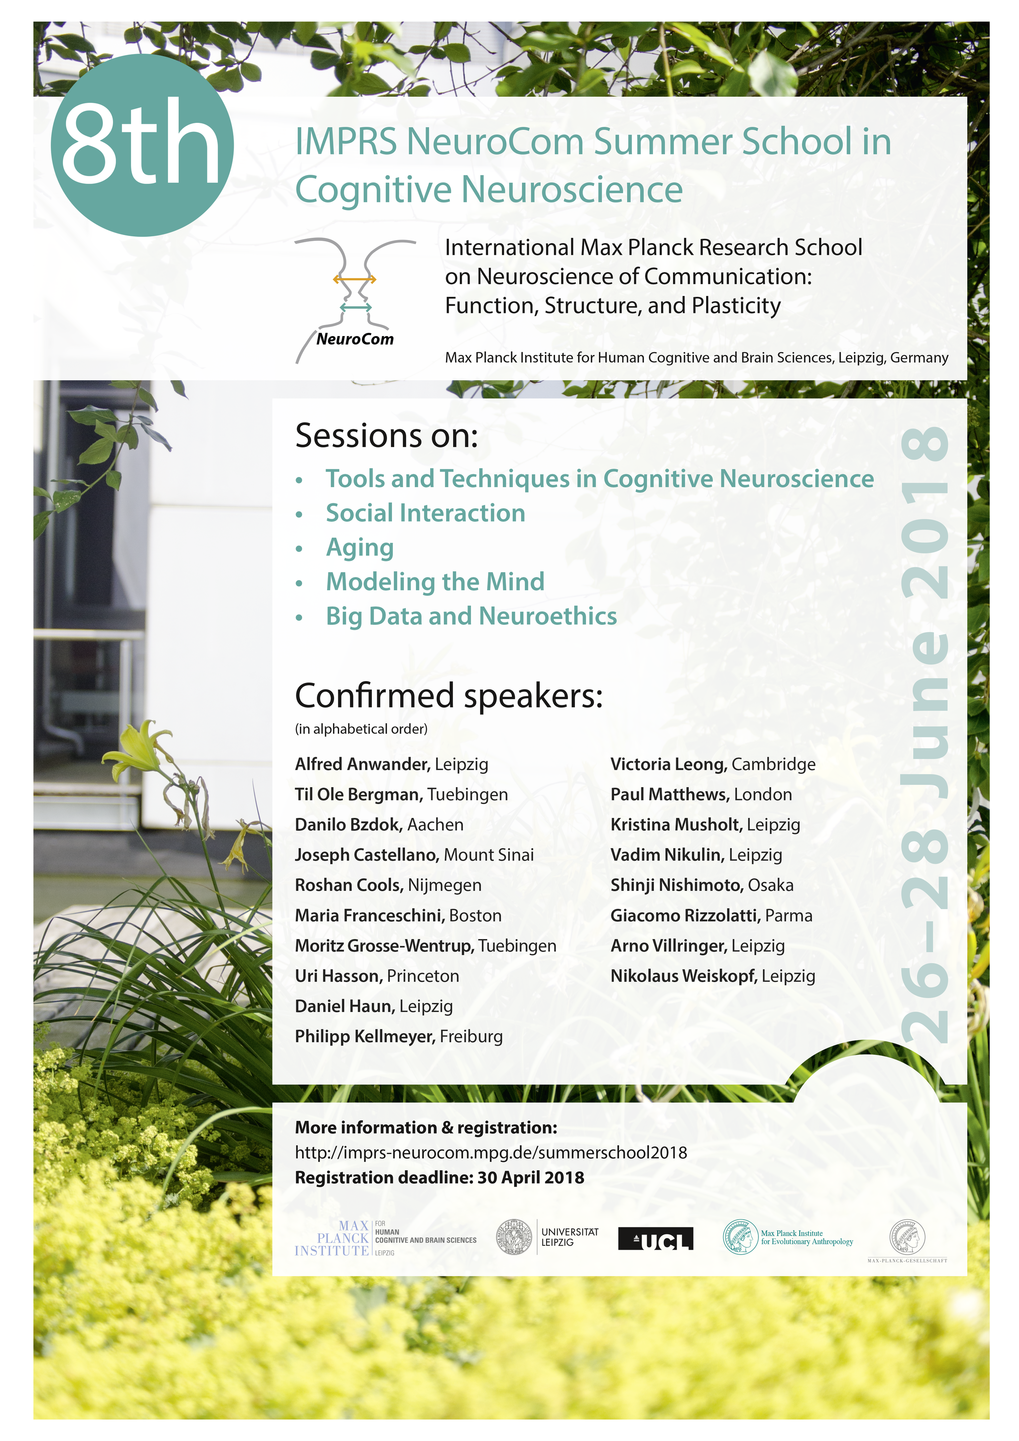 Registration for 8th IMPRS NeuroCom Summer School in Cognitive Neuroscience is now open!